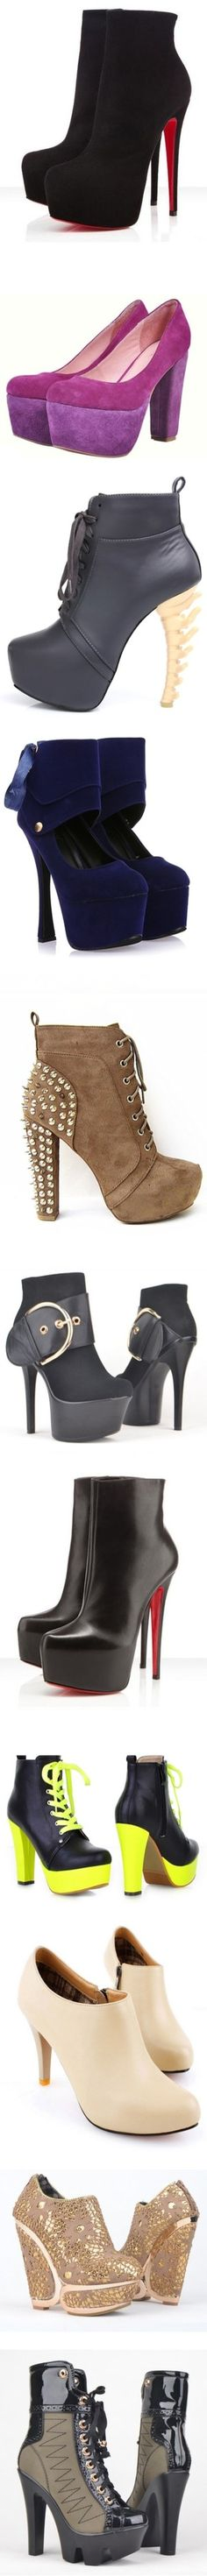 """New Heels, Boots & Platforms"""" by ChineseLaundry  <3!!!"""